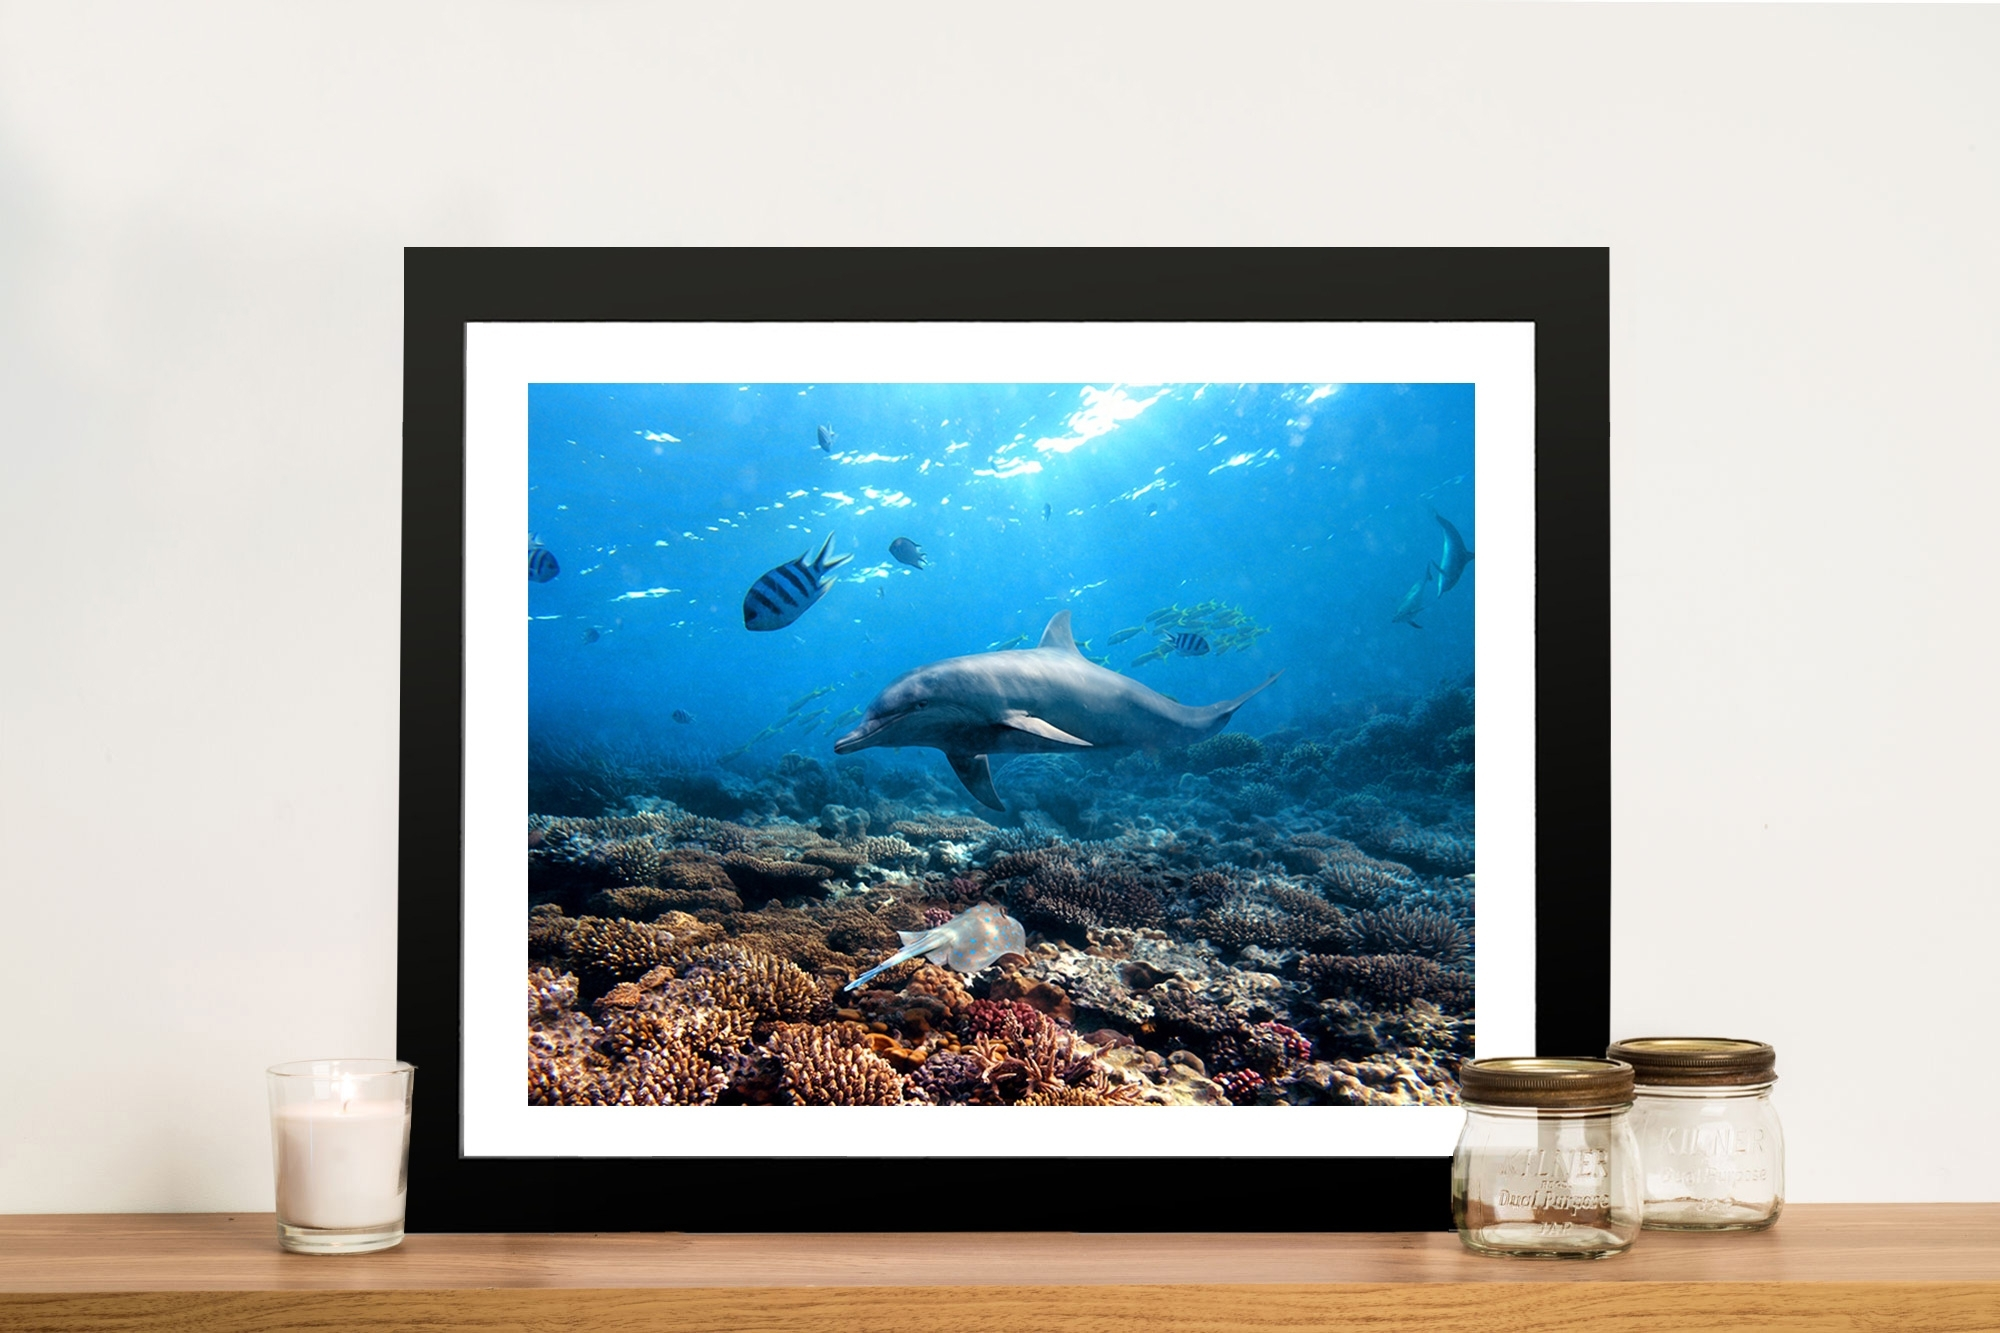 Buy Dolphins Canvas Prints Geelong Melbourne Australia In Most Recently Released Geelong Canvas Wall Art (View 8 of 15)